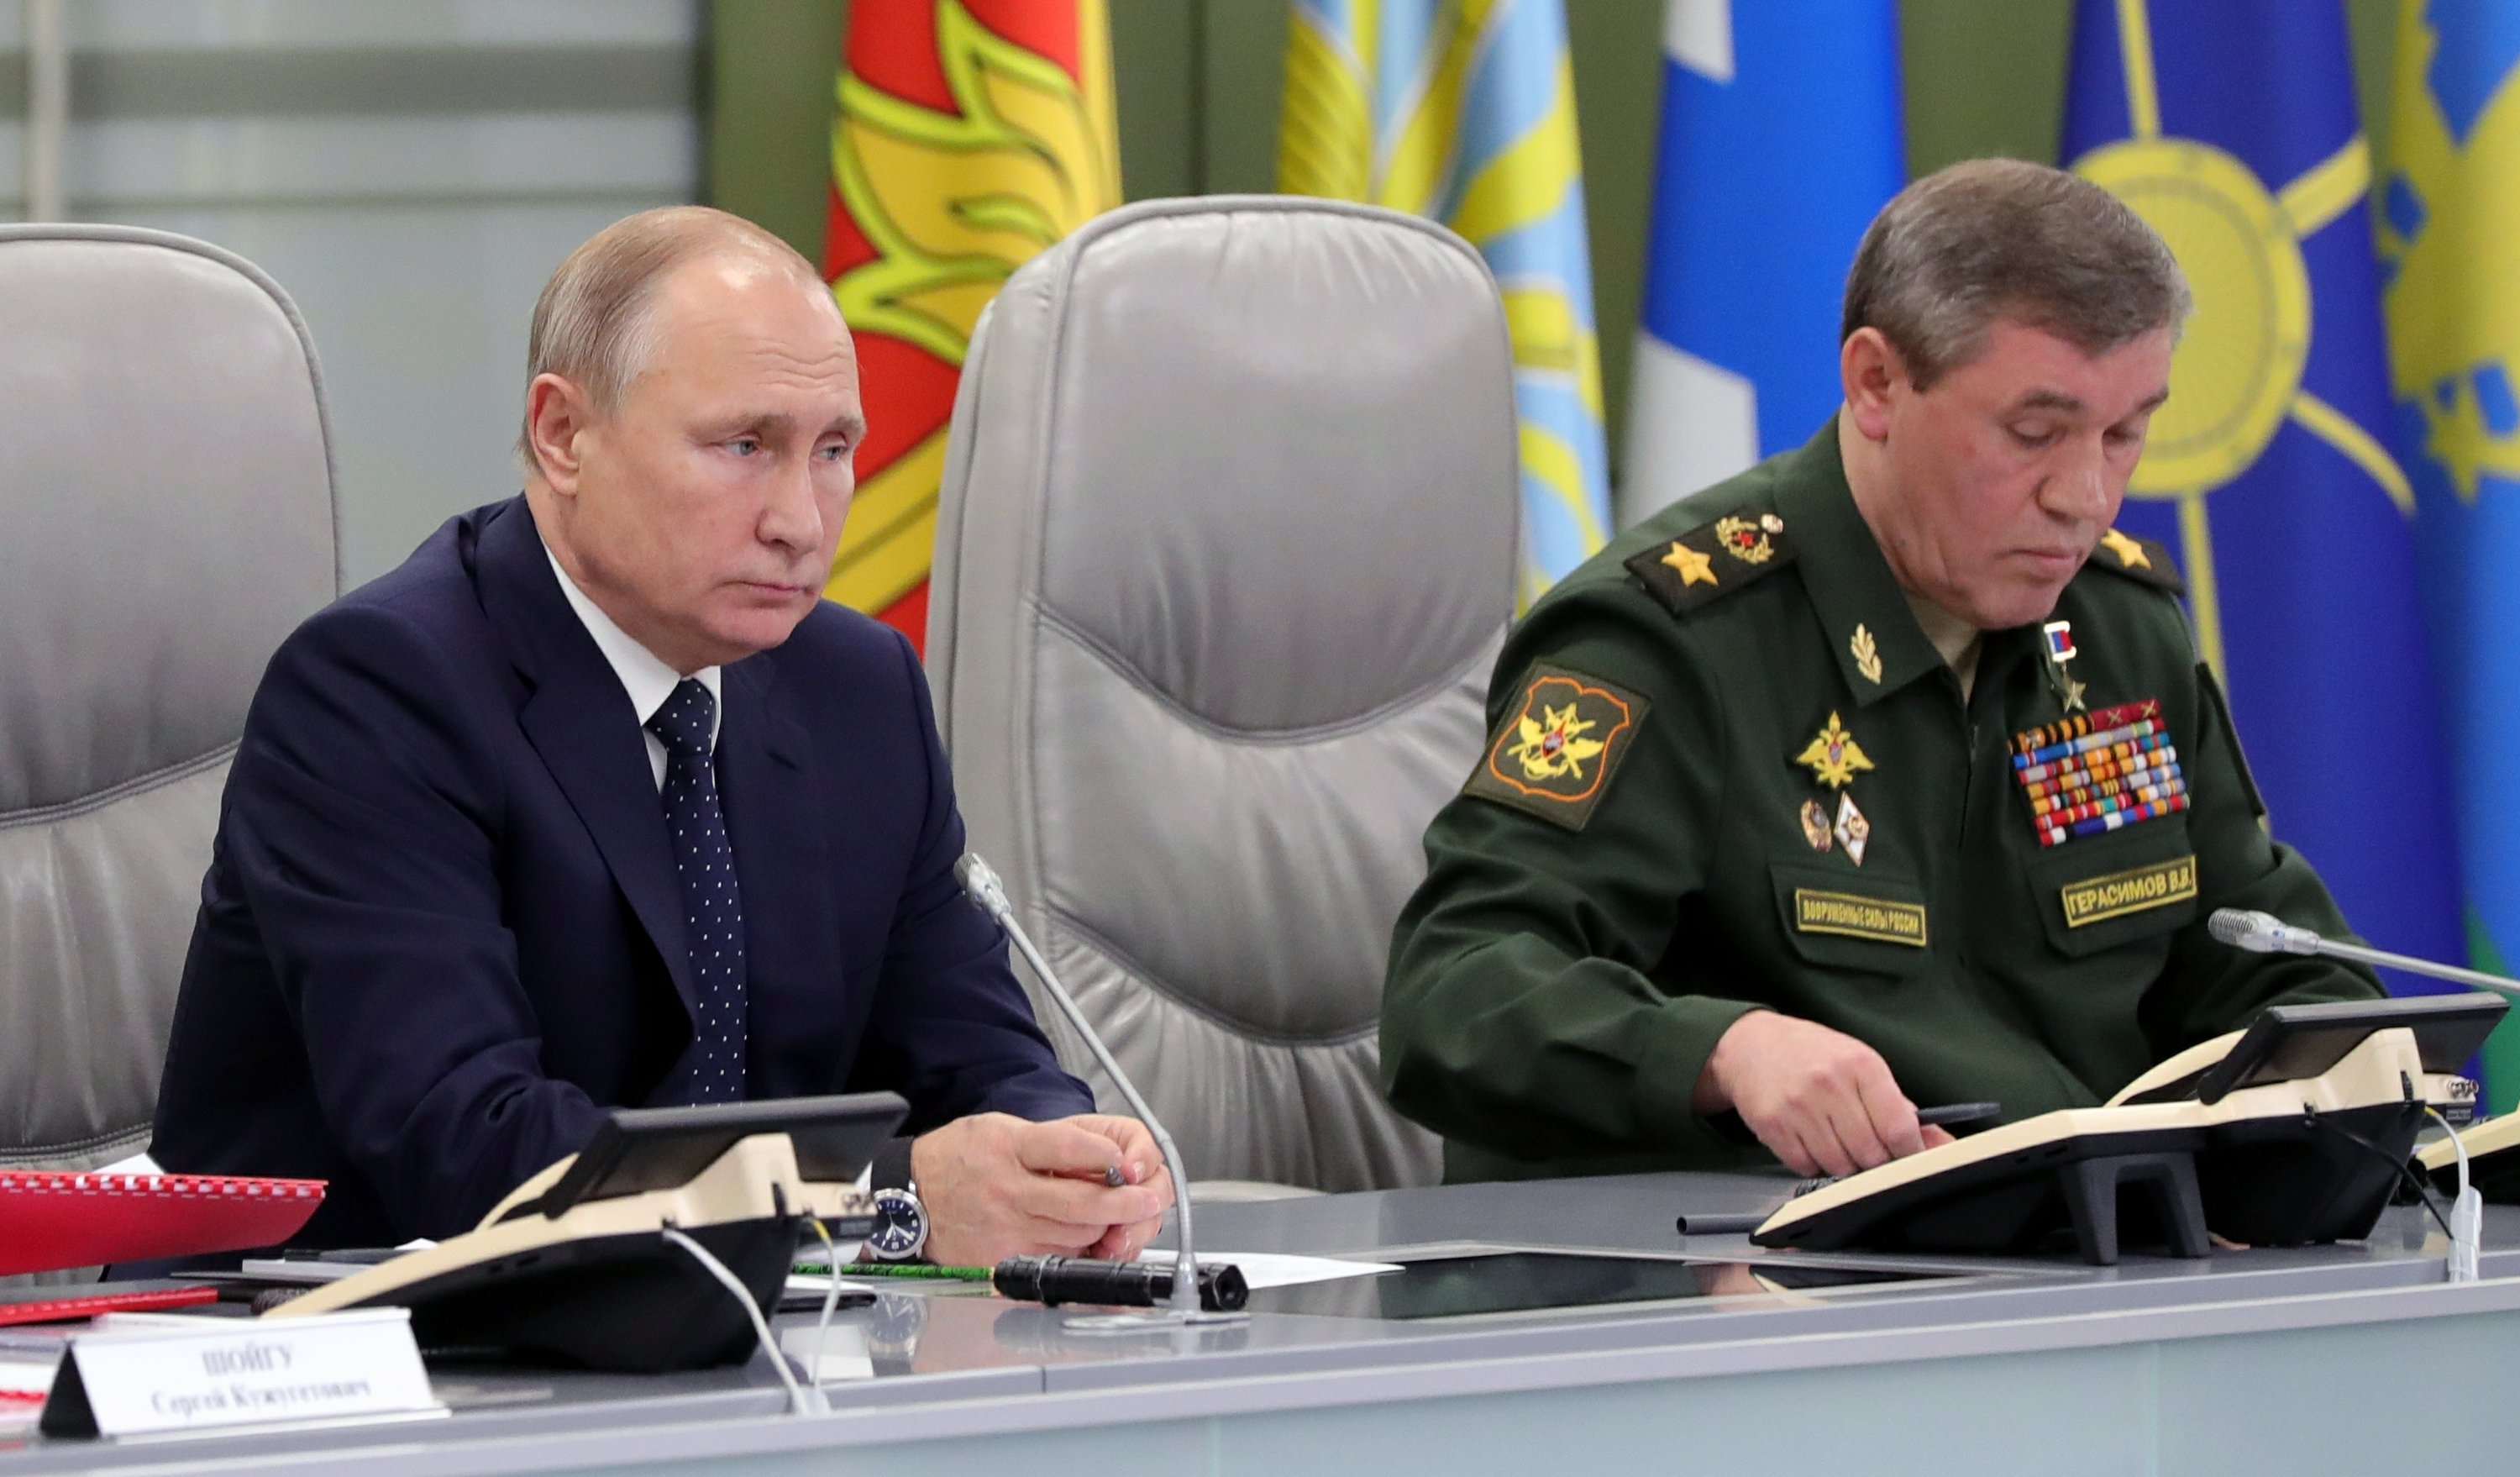 Official: Russian weapon 27 times faster than speed of sound